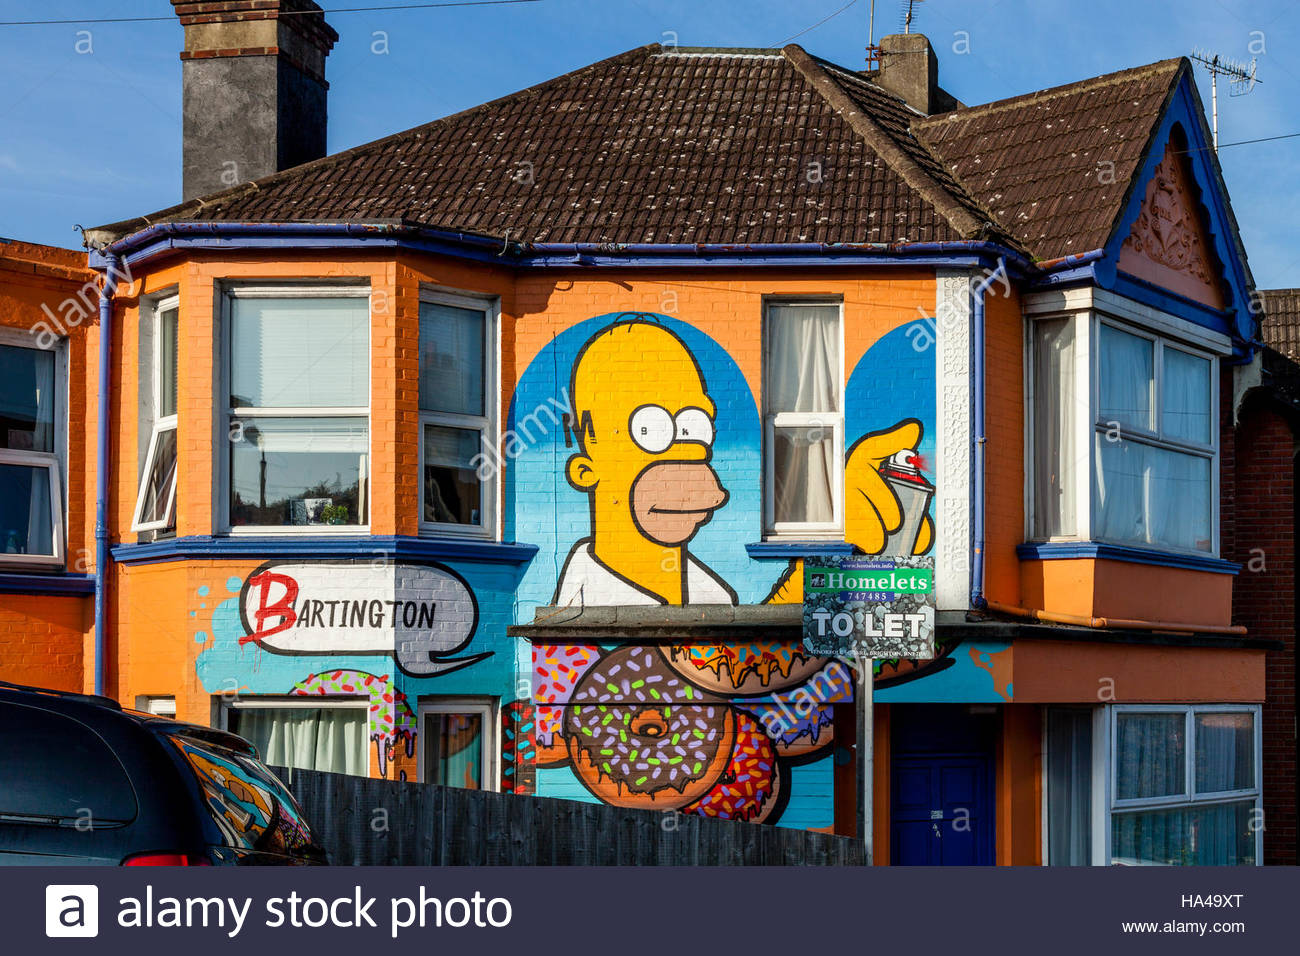 A Colourful House Exterior Painted With An Image Of The Cartoon Character Homer Simpson, Brighton, Sussex, UK - Stock Image